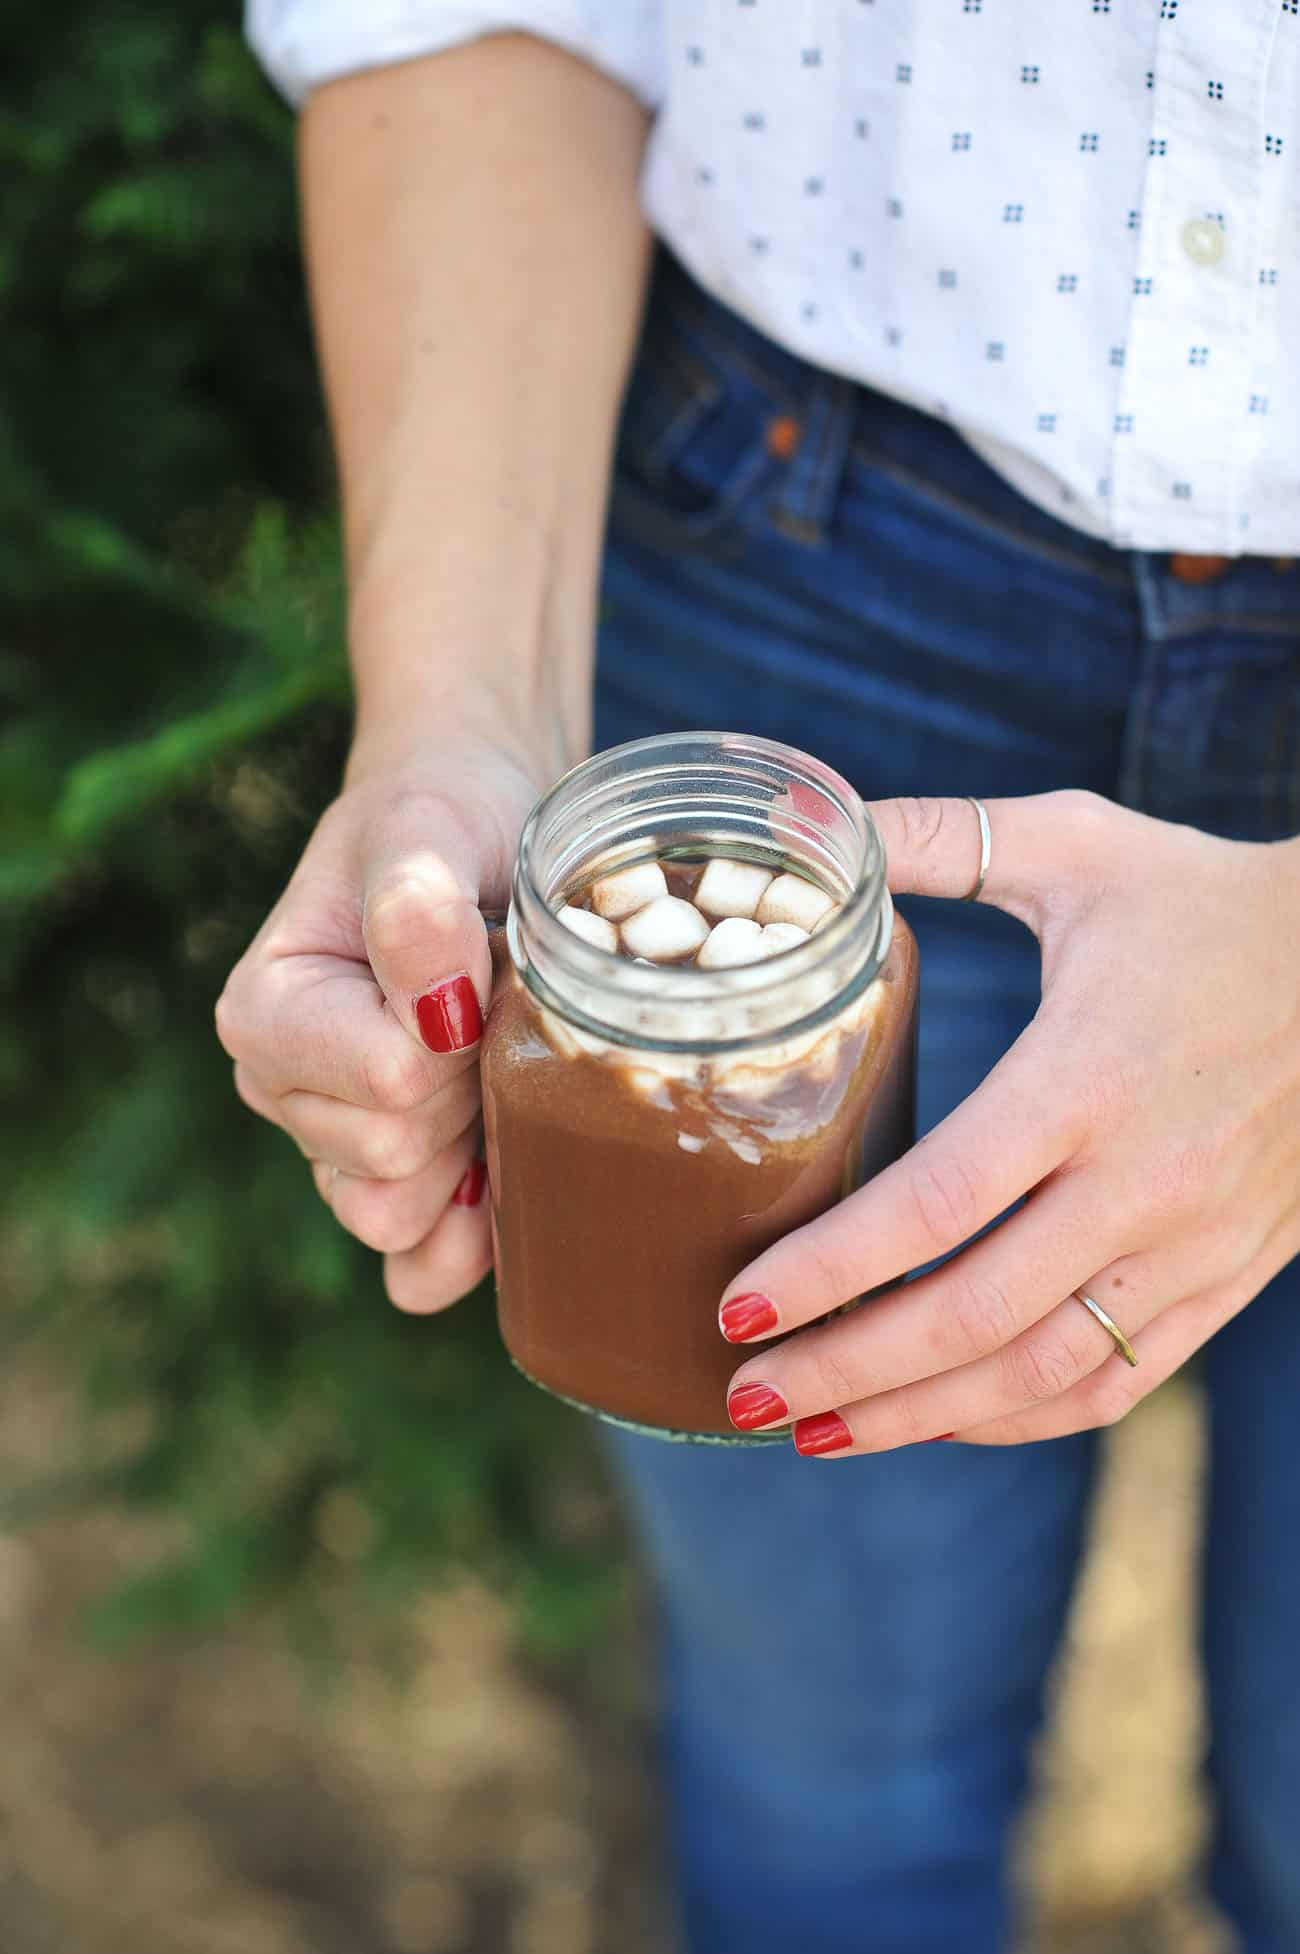 Christmas tree farm, winter picnic, fall photo ideas, Hot chocolate - My Style Vita @mystylevita